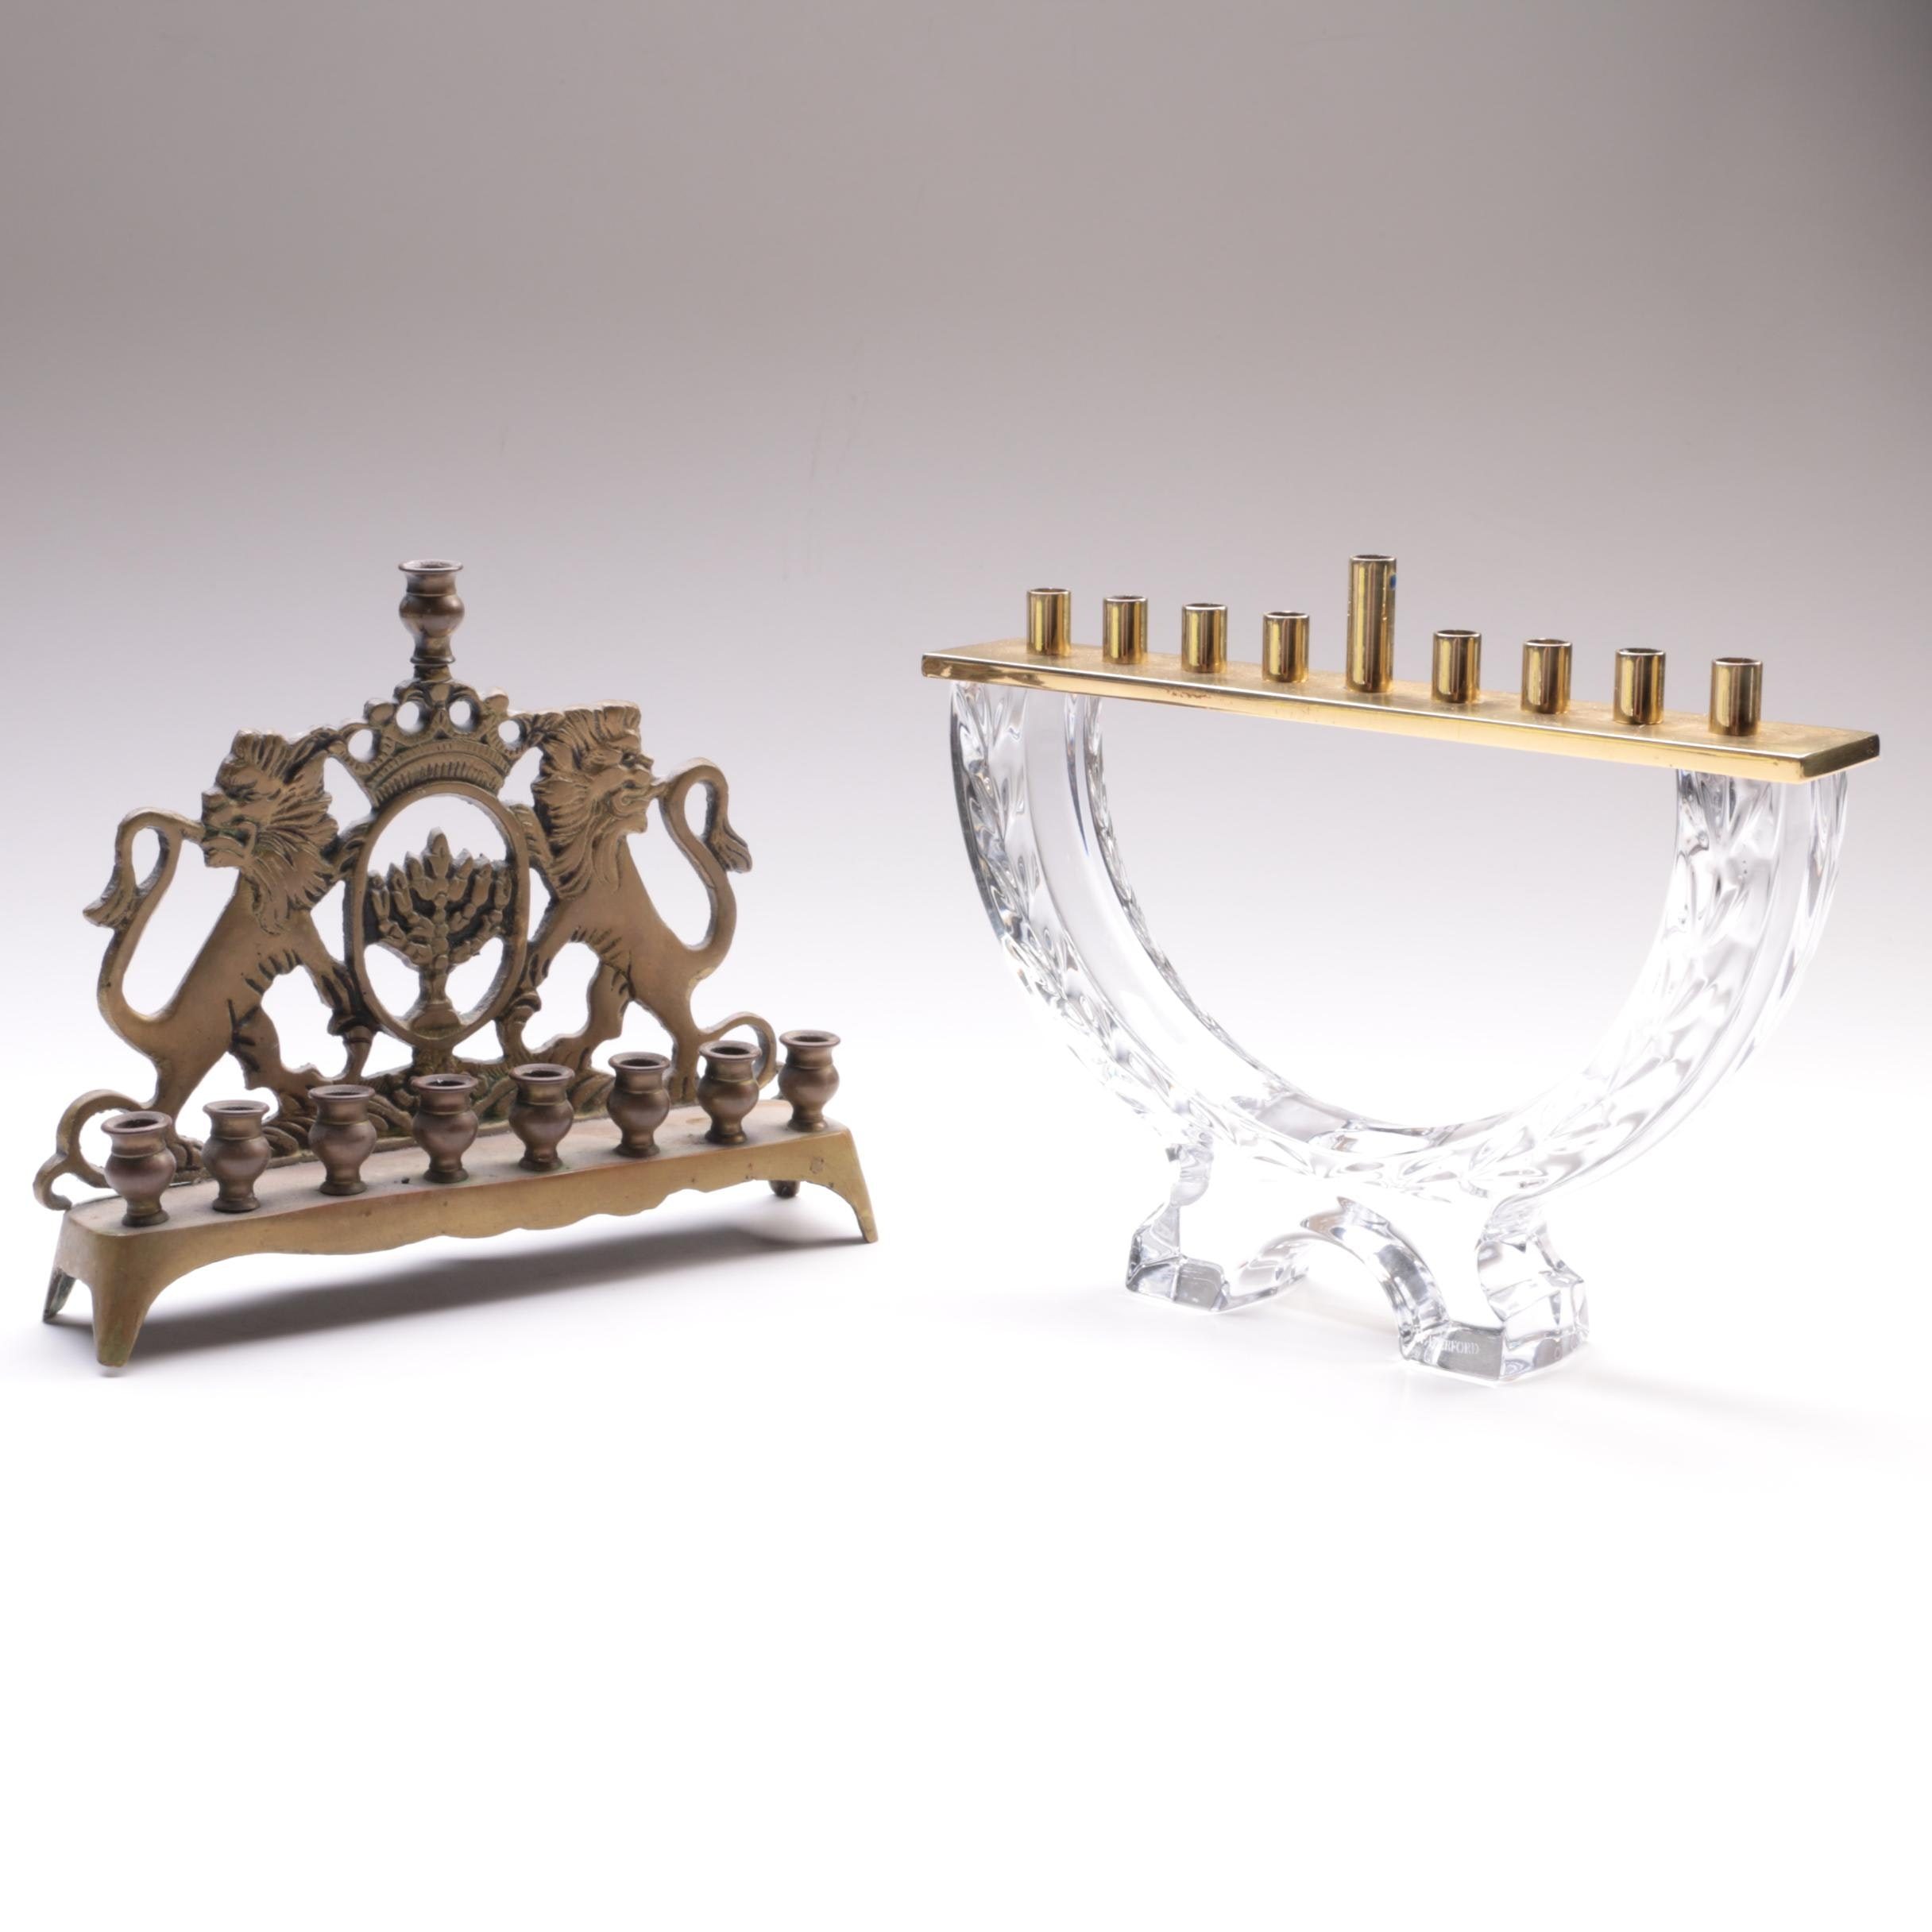 Waterford Crystal Menorah with Brass Lions of Judah Menorah